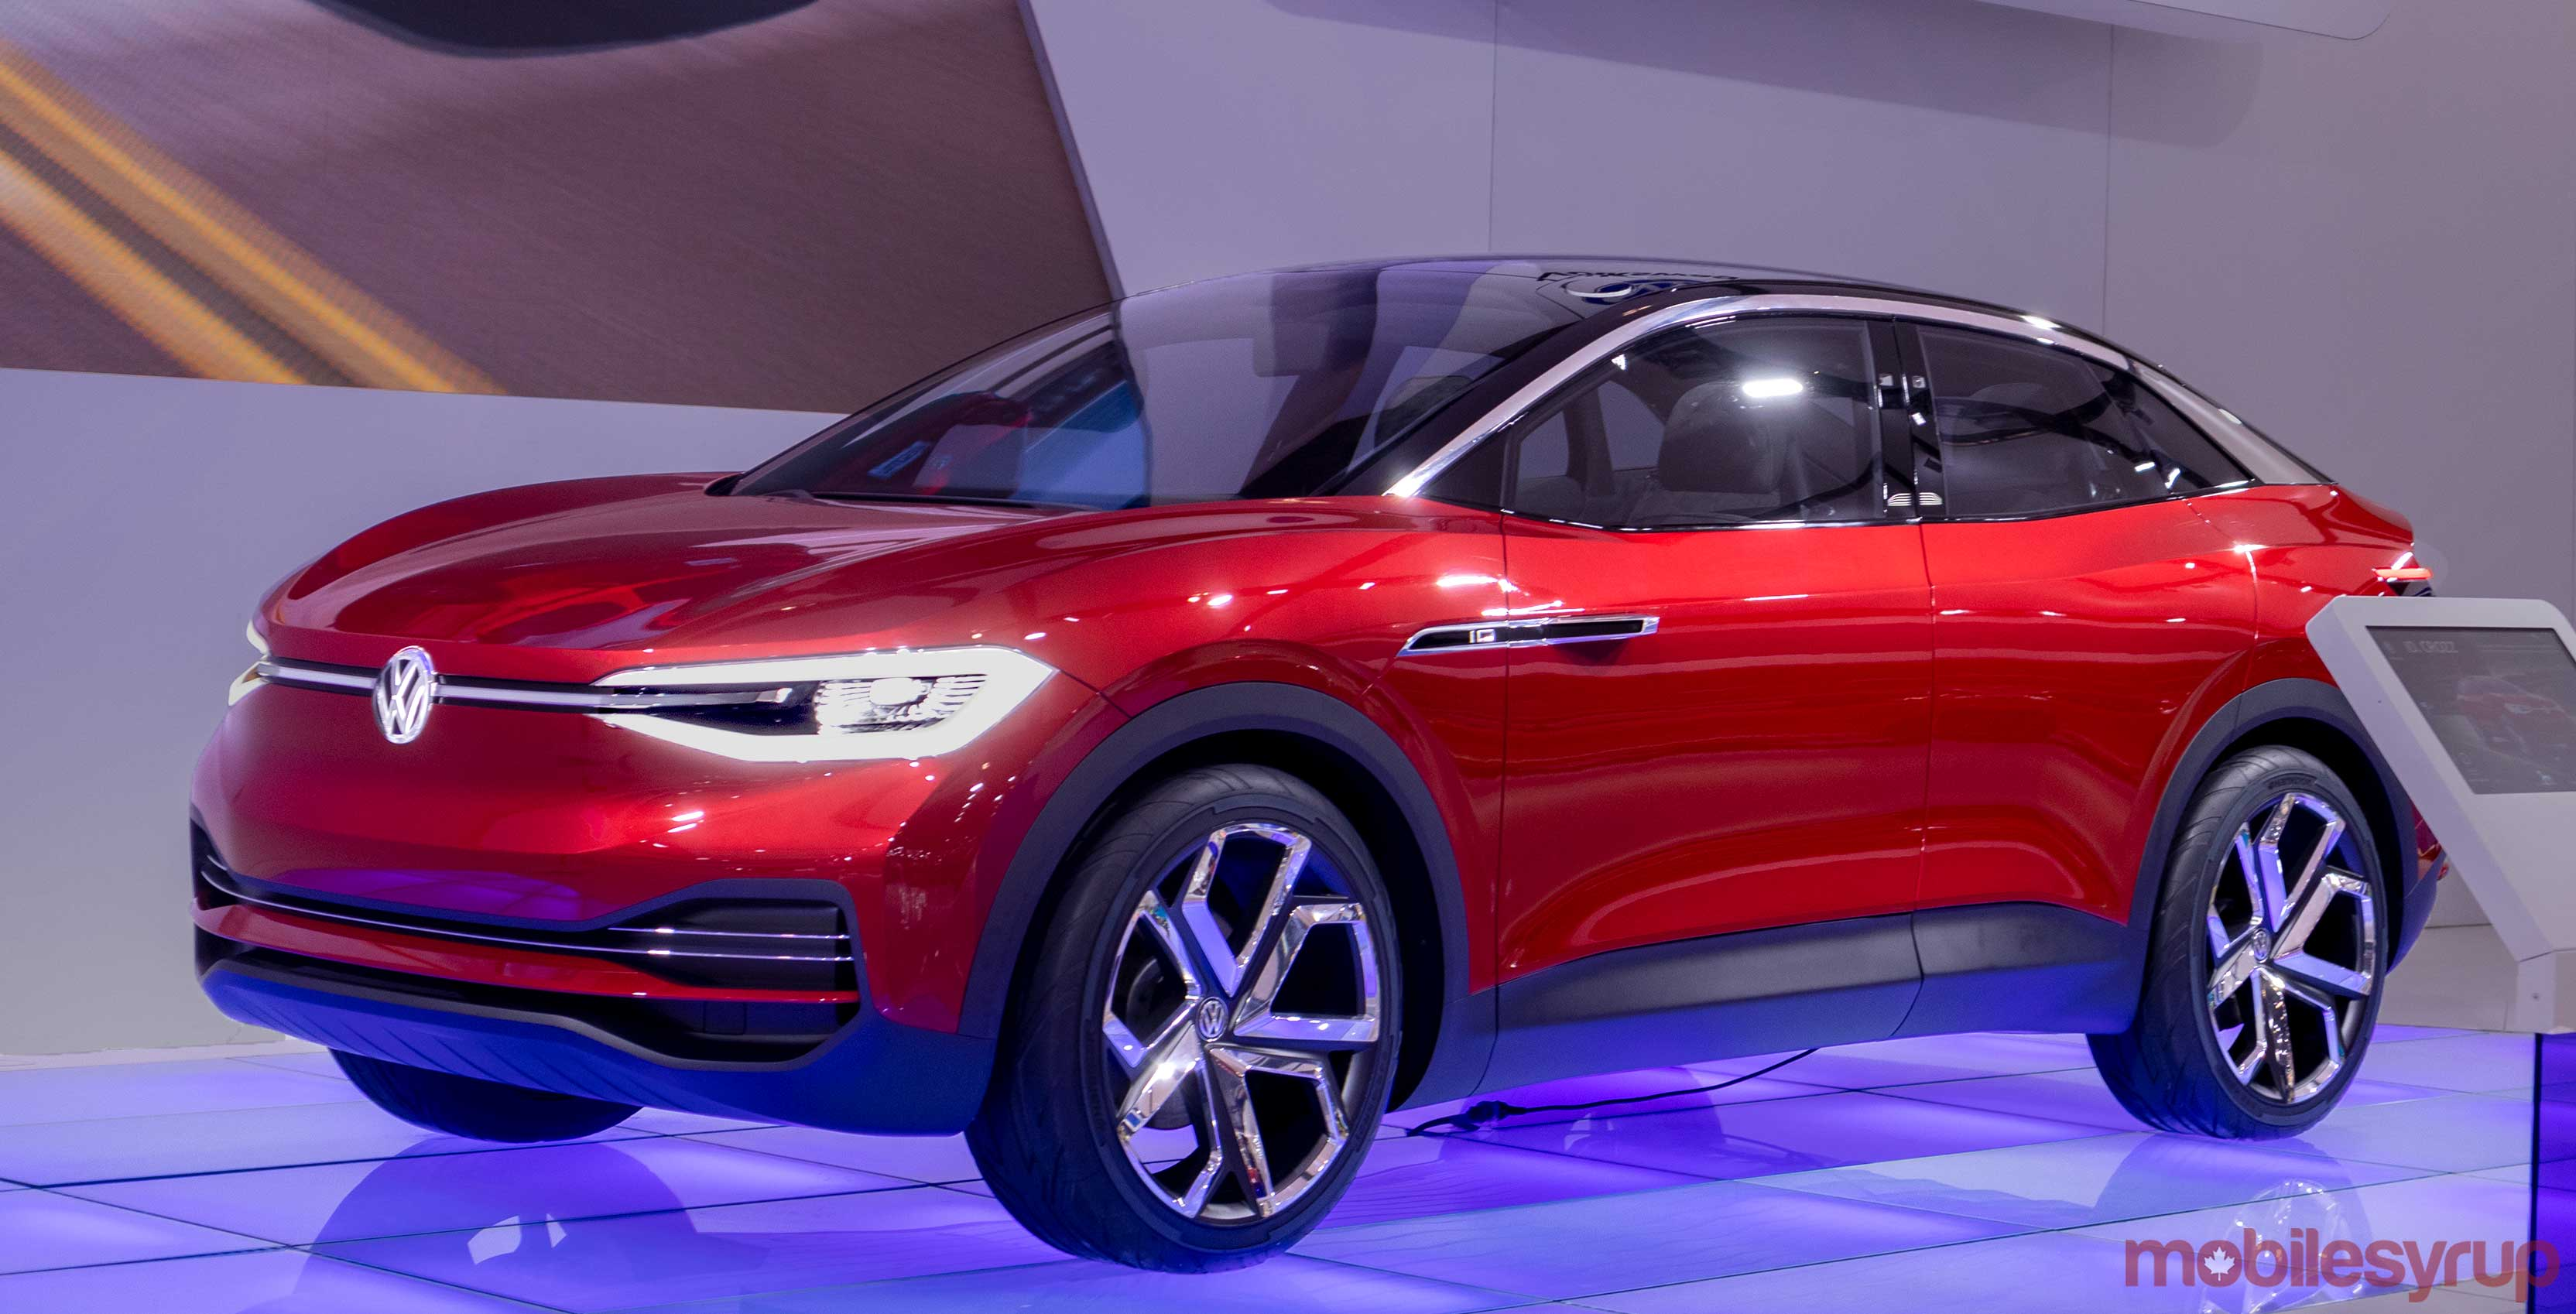 Volkswagen Canada Ceo On Its New Modular Platform And I D Vehicles